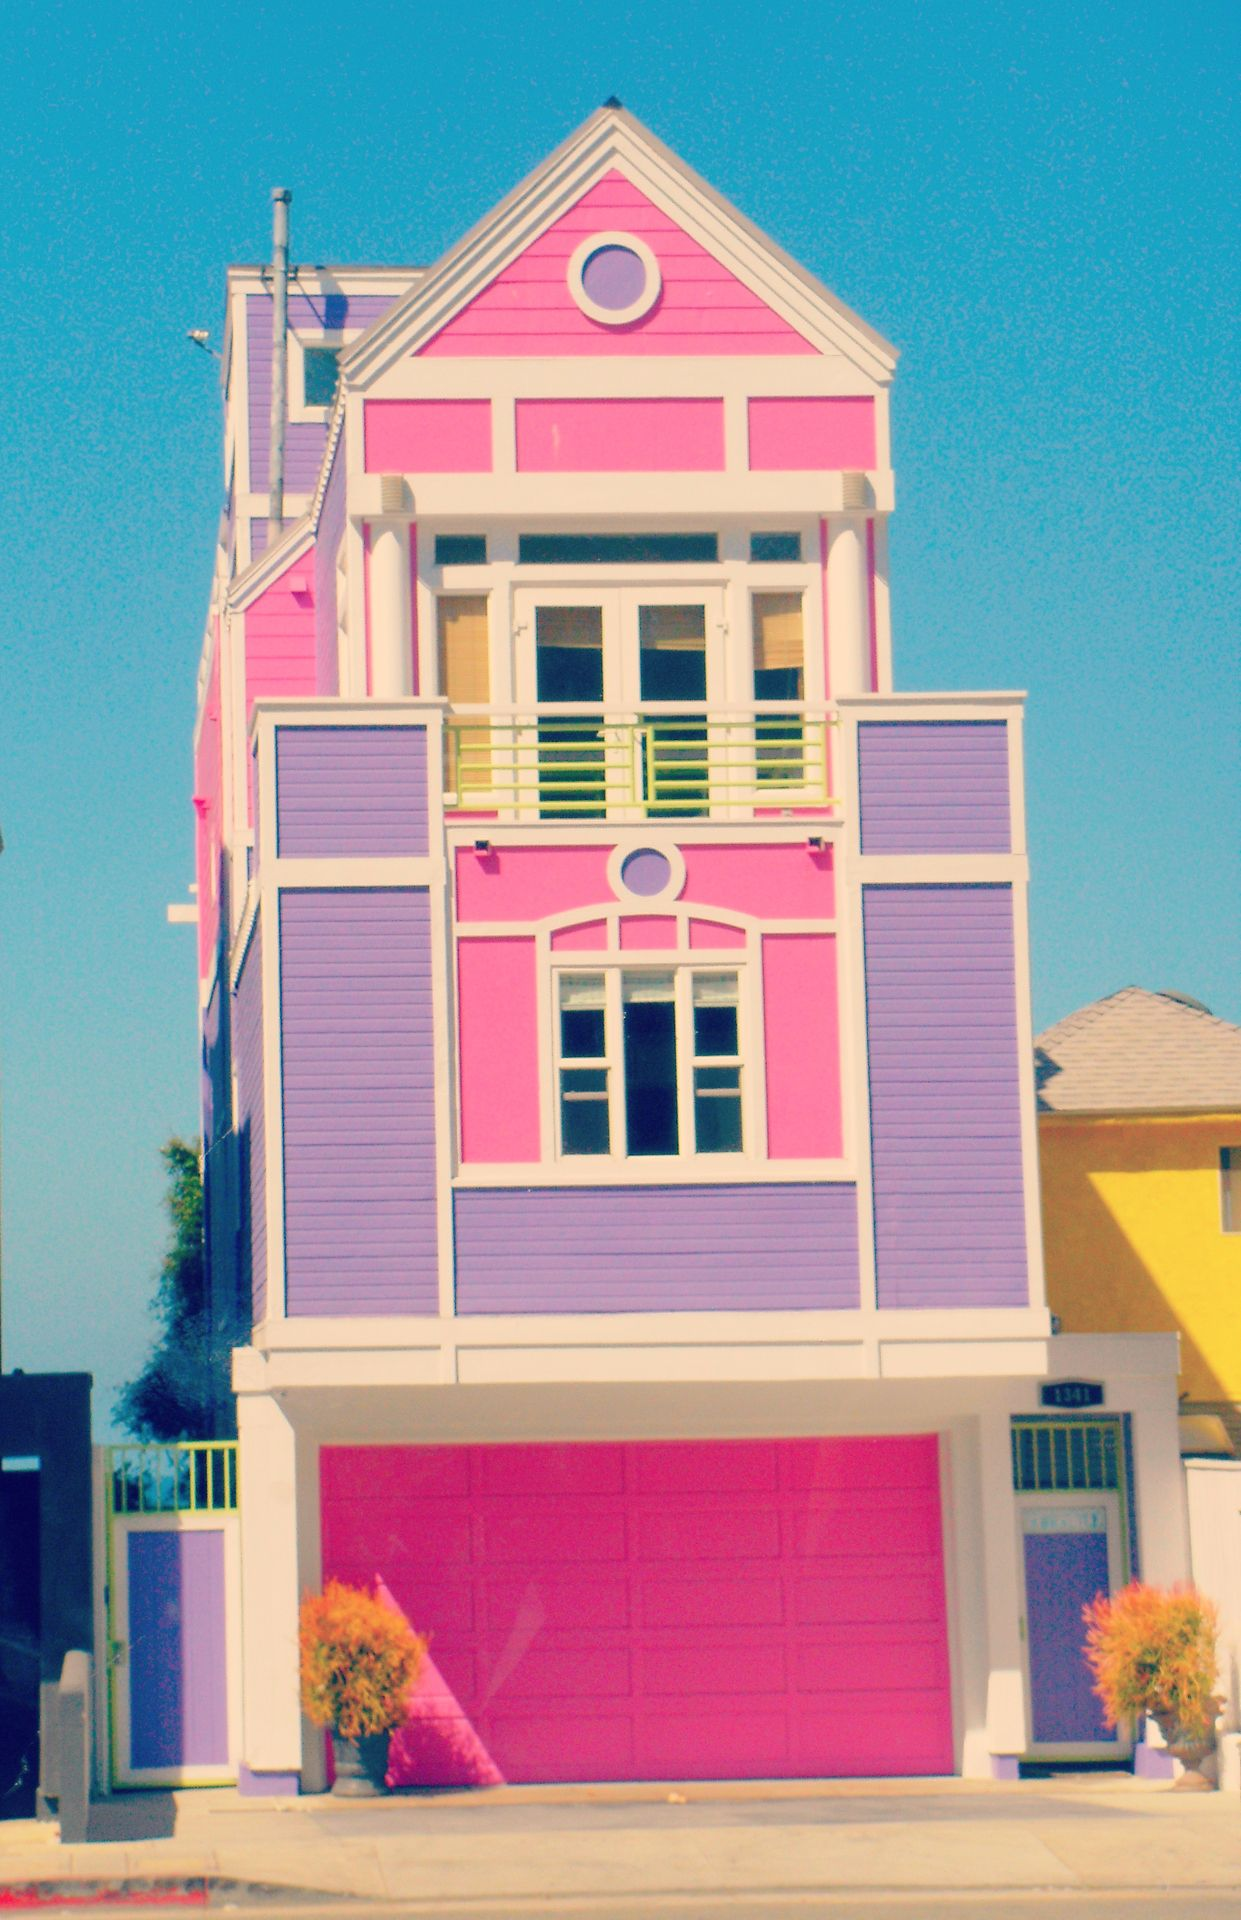 House of Ruth Handler creator of Barbie in Santa Monica, L.A. ...